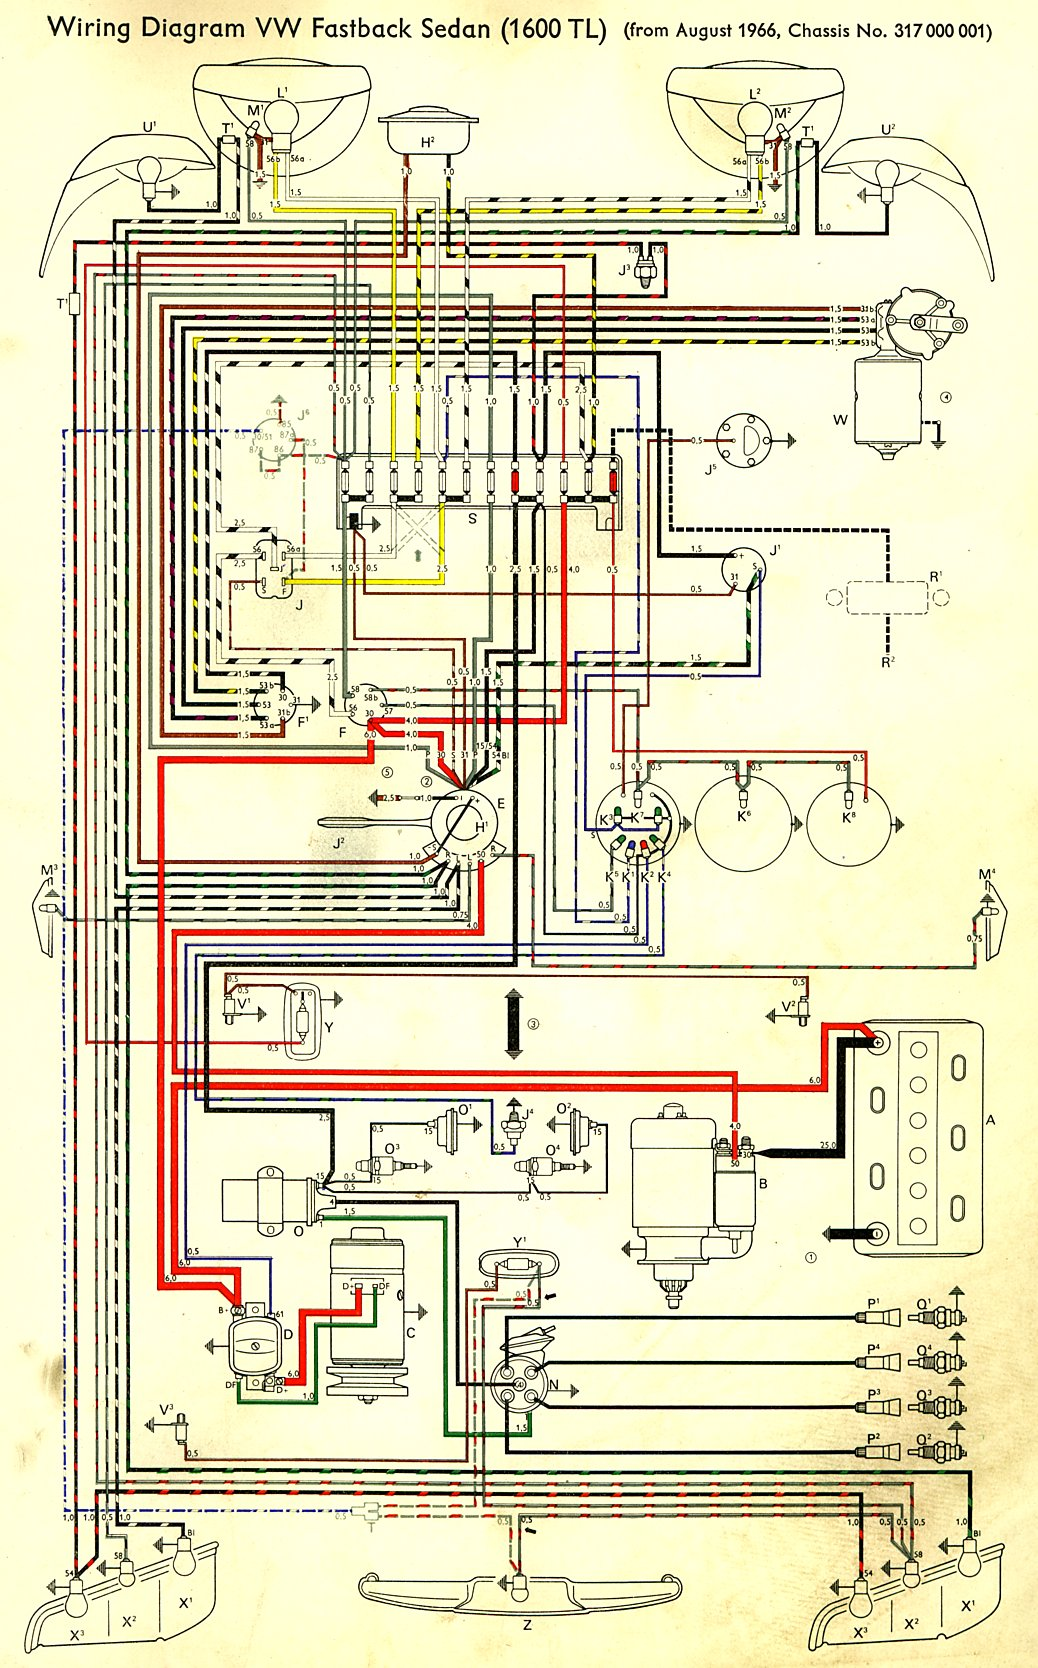 1972 Volkswagen Type 3 Wiring Diagram Schematic Understand How To Wire Up The Alternator Thesamba Com Diagrams 1969 Station Wagon